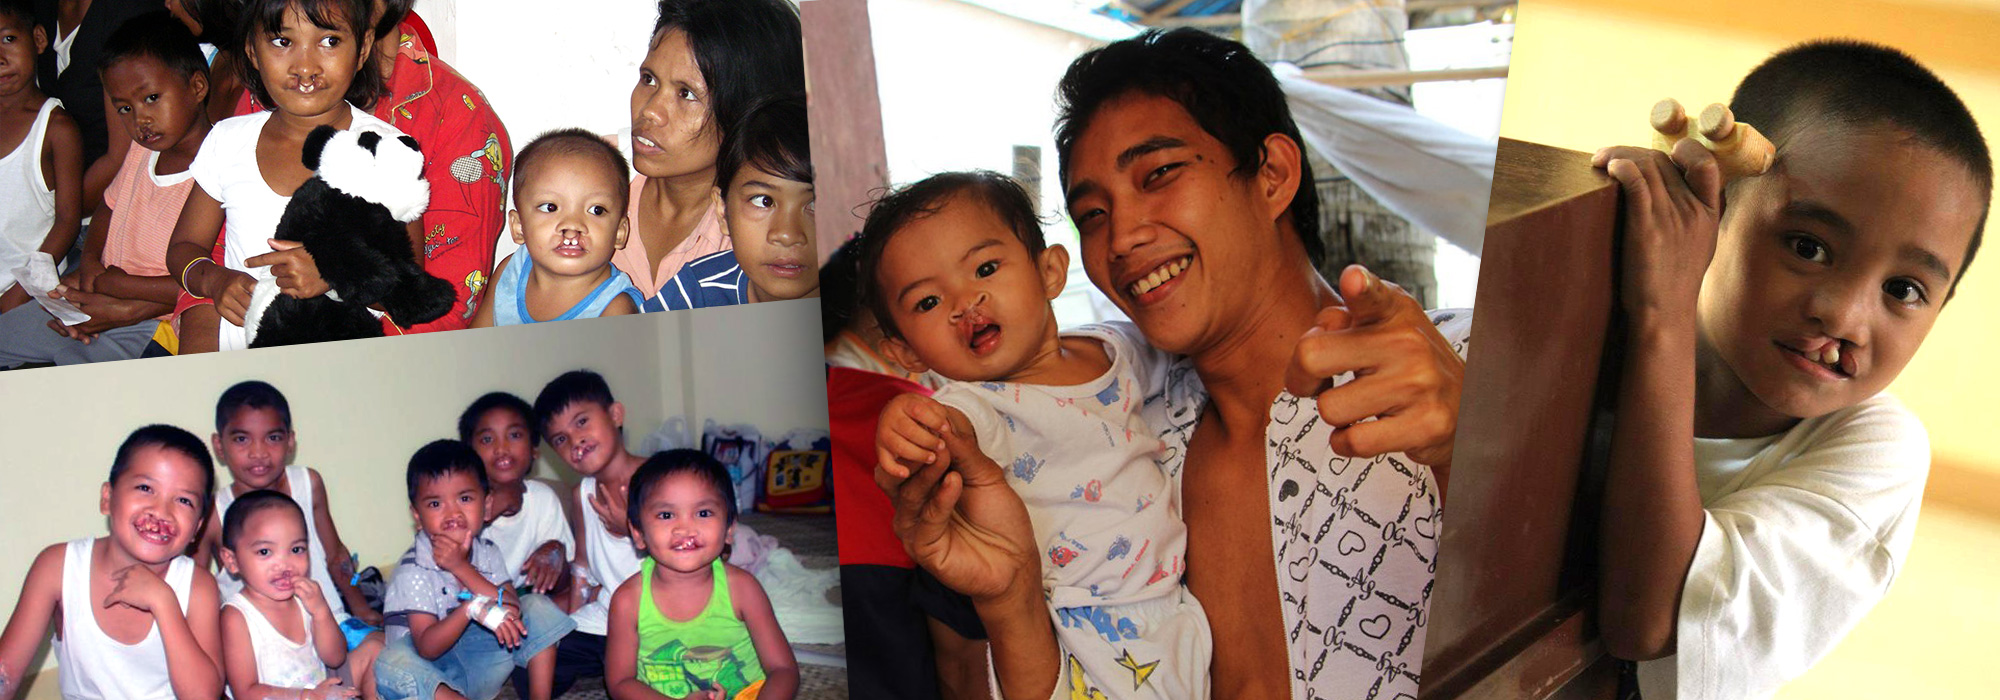 8,000 children are born in the Philippines each year with a facial deformity